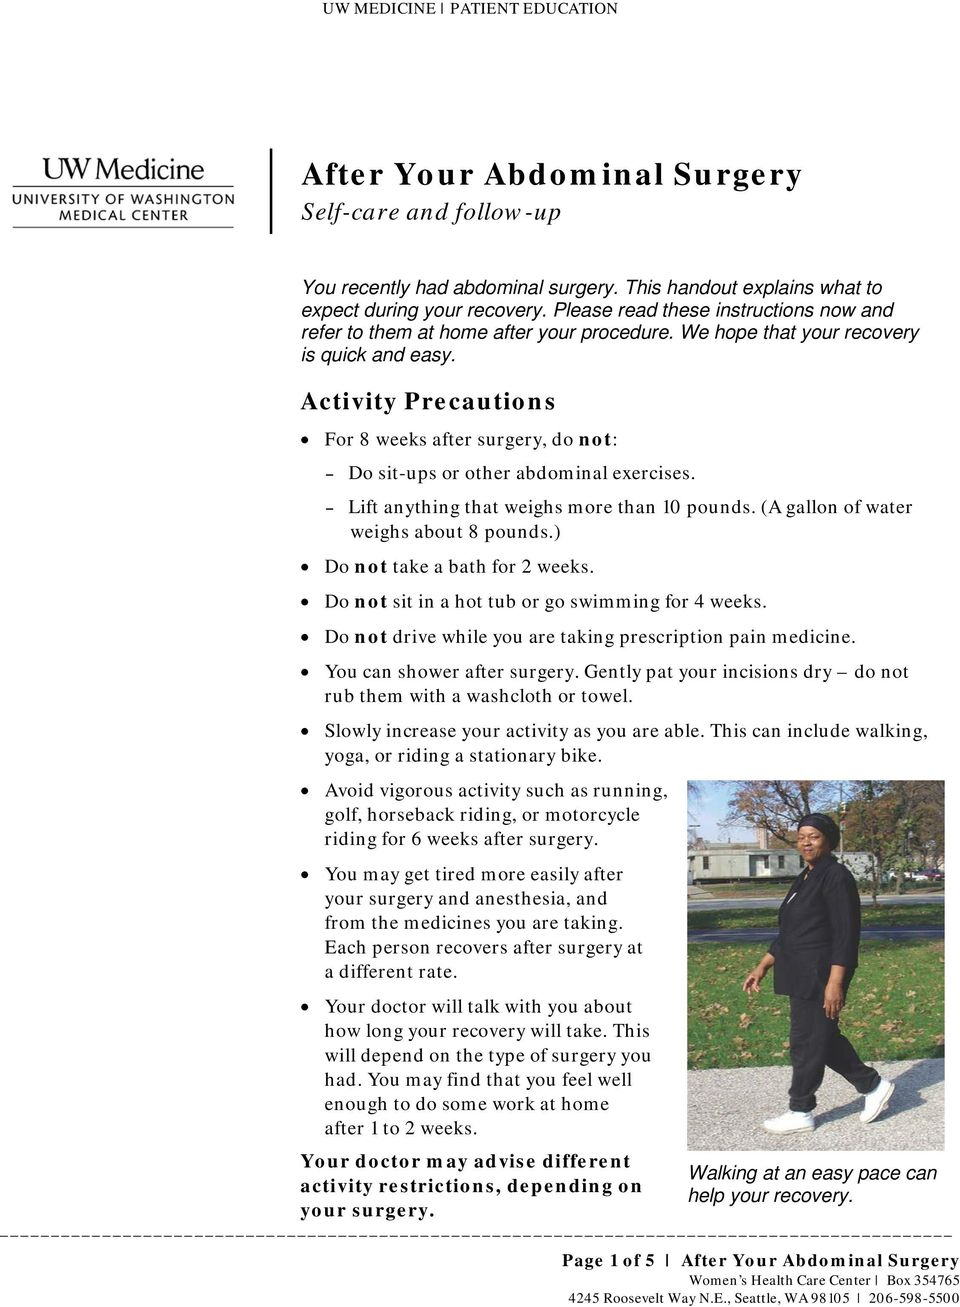 Activity Precautions For 8 weeks after surgery, do not: Do sit-ups or other abdominal exercises. Lift anything that weighs more than 10 pounds. (A gallon of water weighs about 8 pounds.